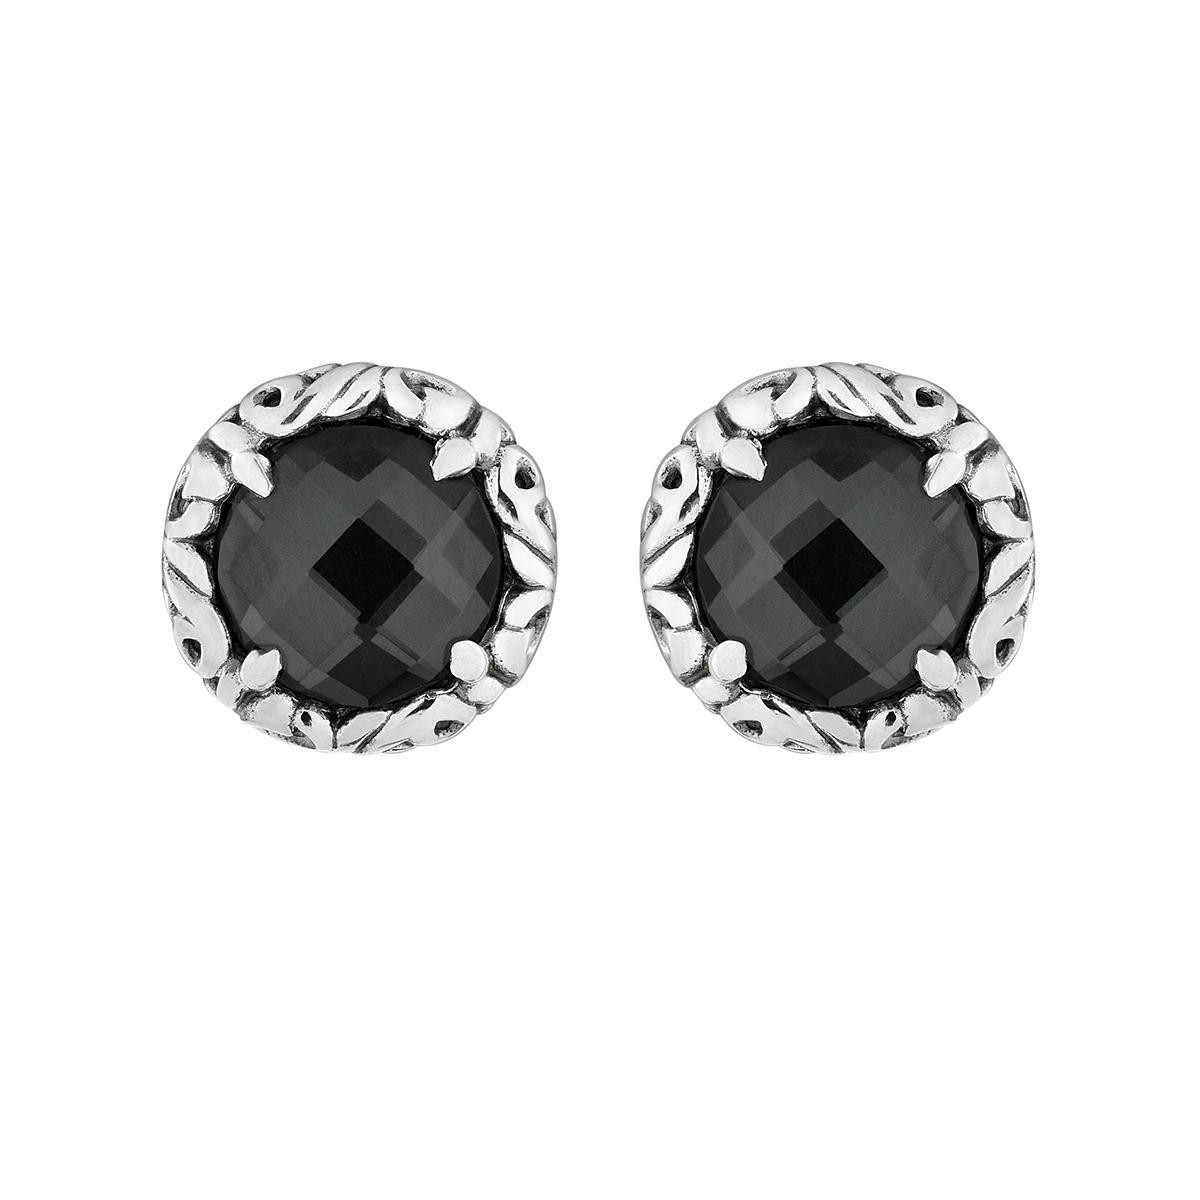 Charles Krypell 8 mm White Quartz over Hematite Earrings Sterling by Charles Krypell